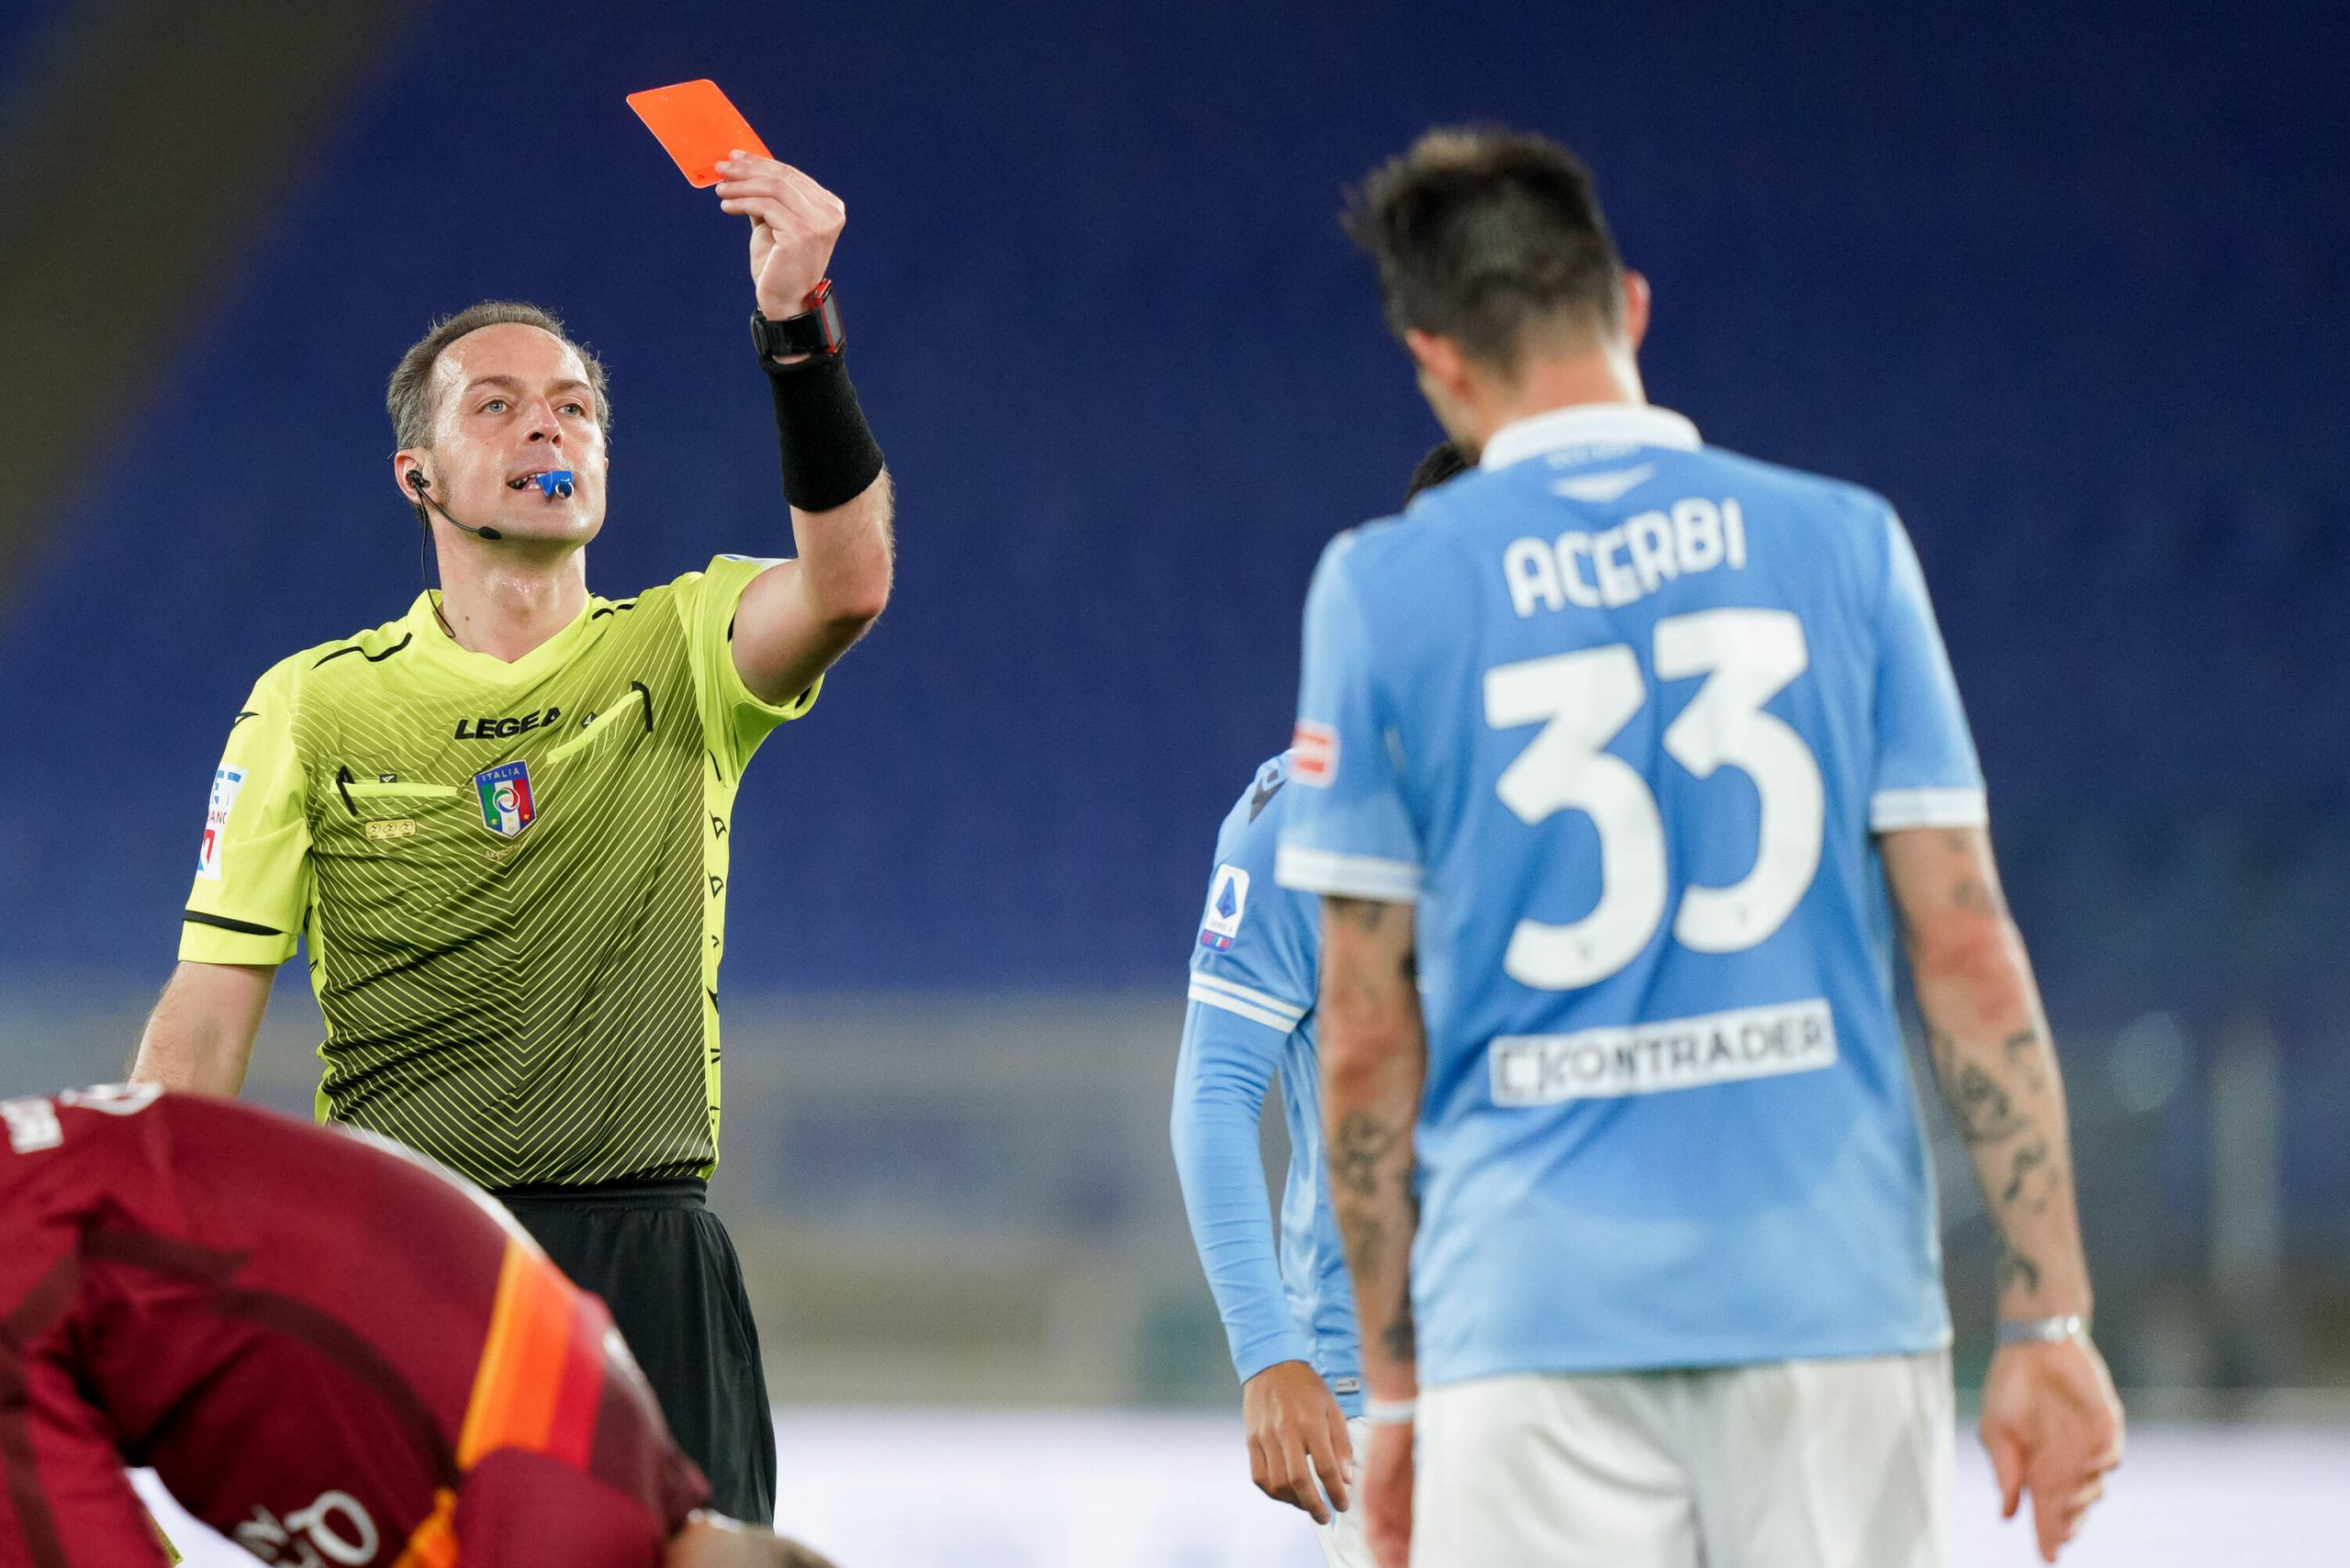 """Acerbi Handed Roma the Victory"""" - Italian Football Pundit Rips Lazio  Defender for His Performance in the Derby della Capitale 